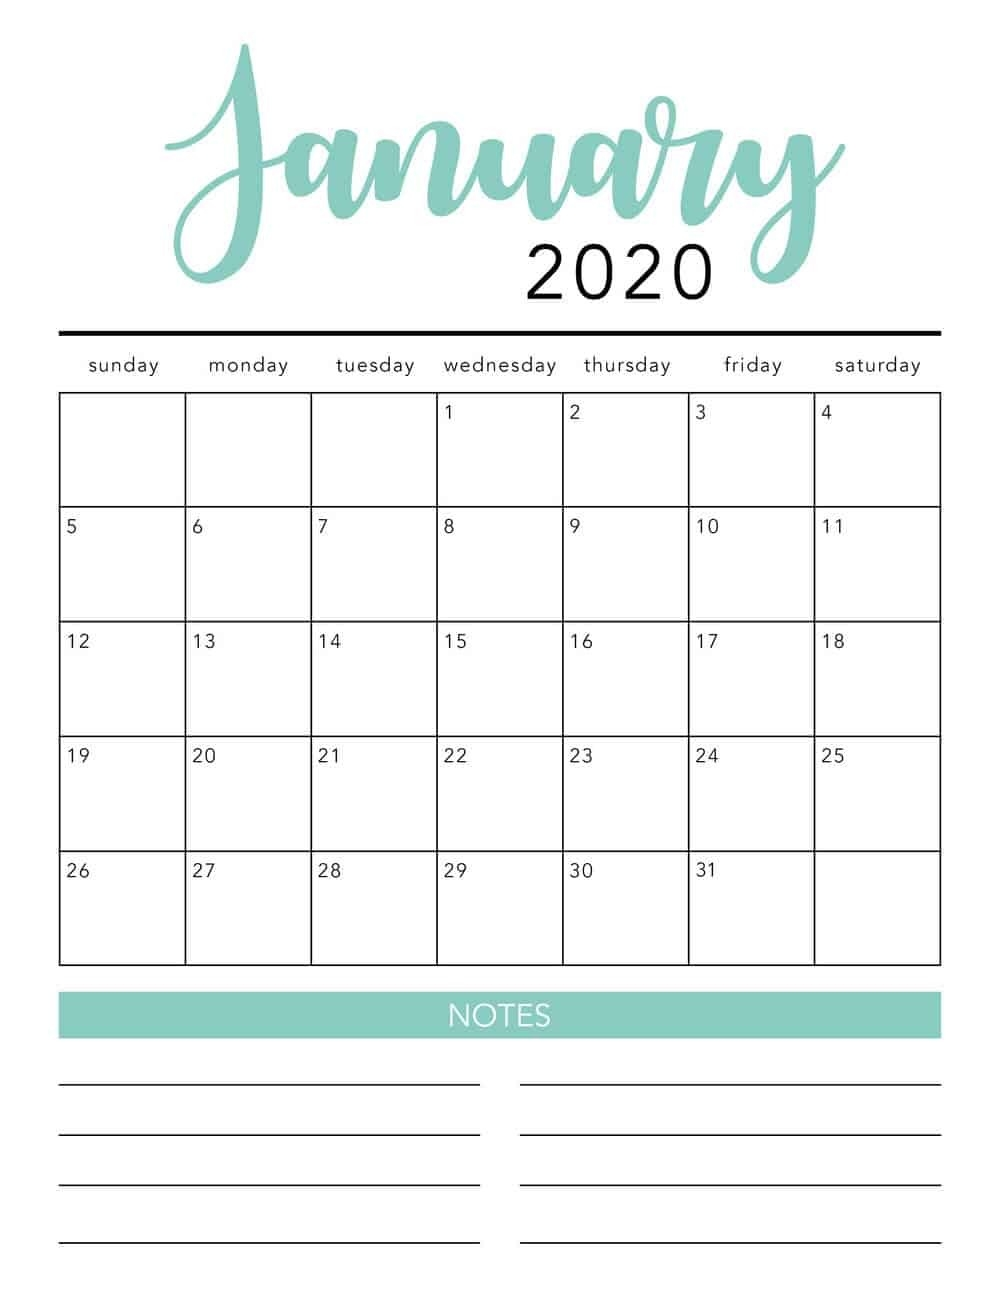 Free 2020 Printable Calendar Template (2 Colors!) - I Heart-Monthly Calendar Sheets 2020